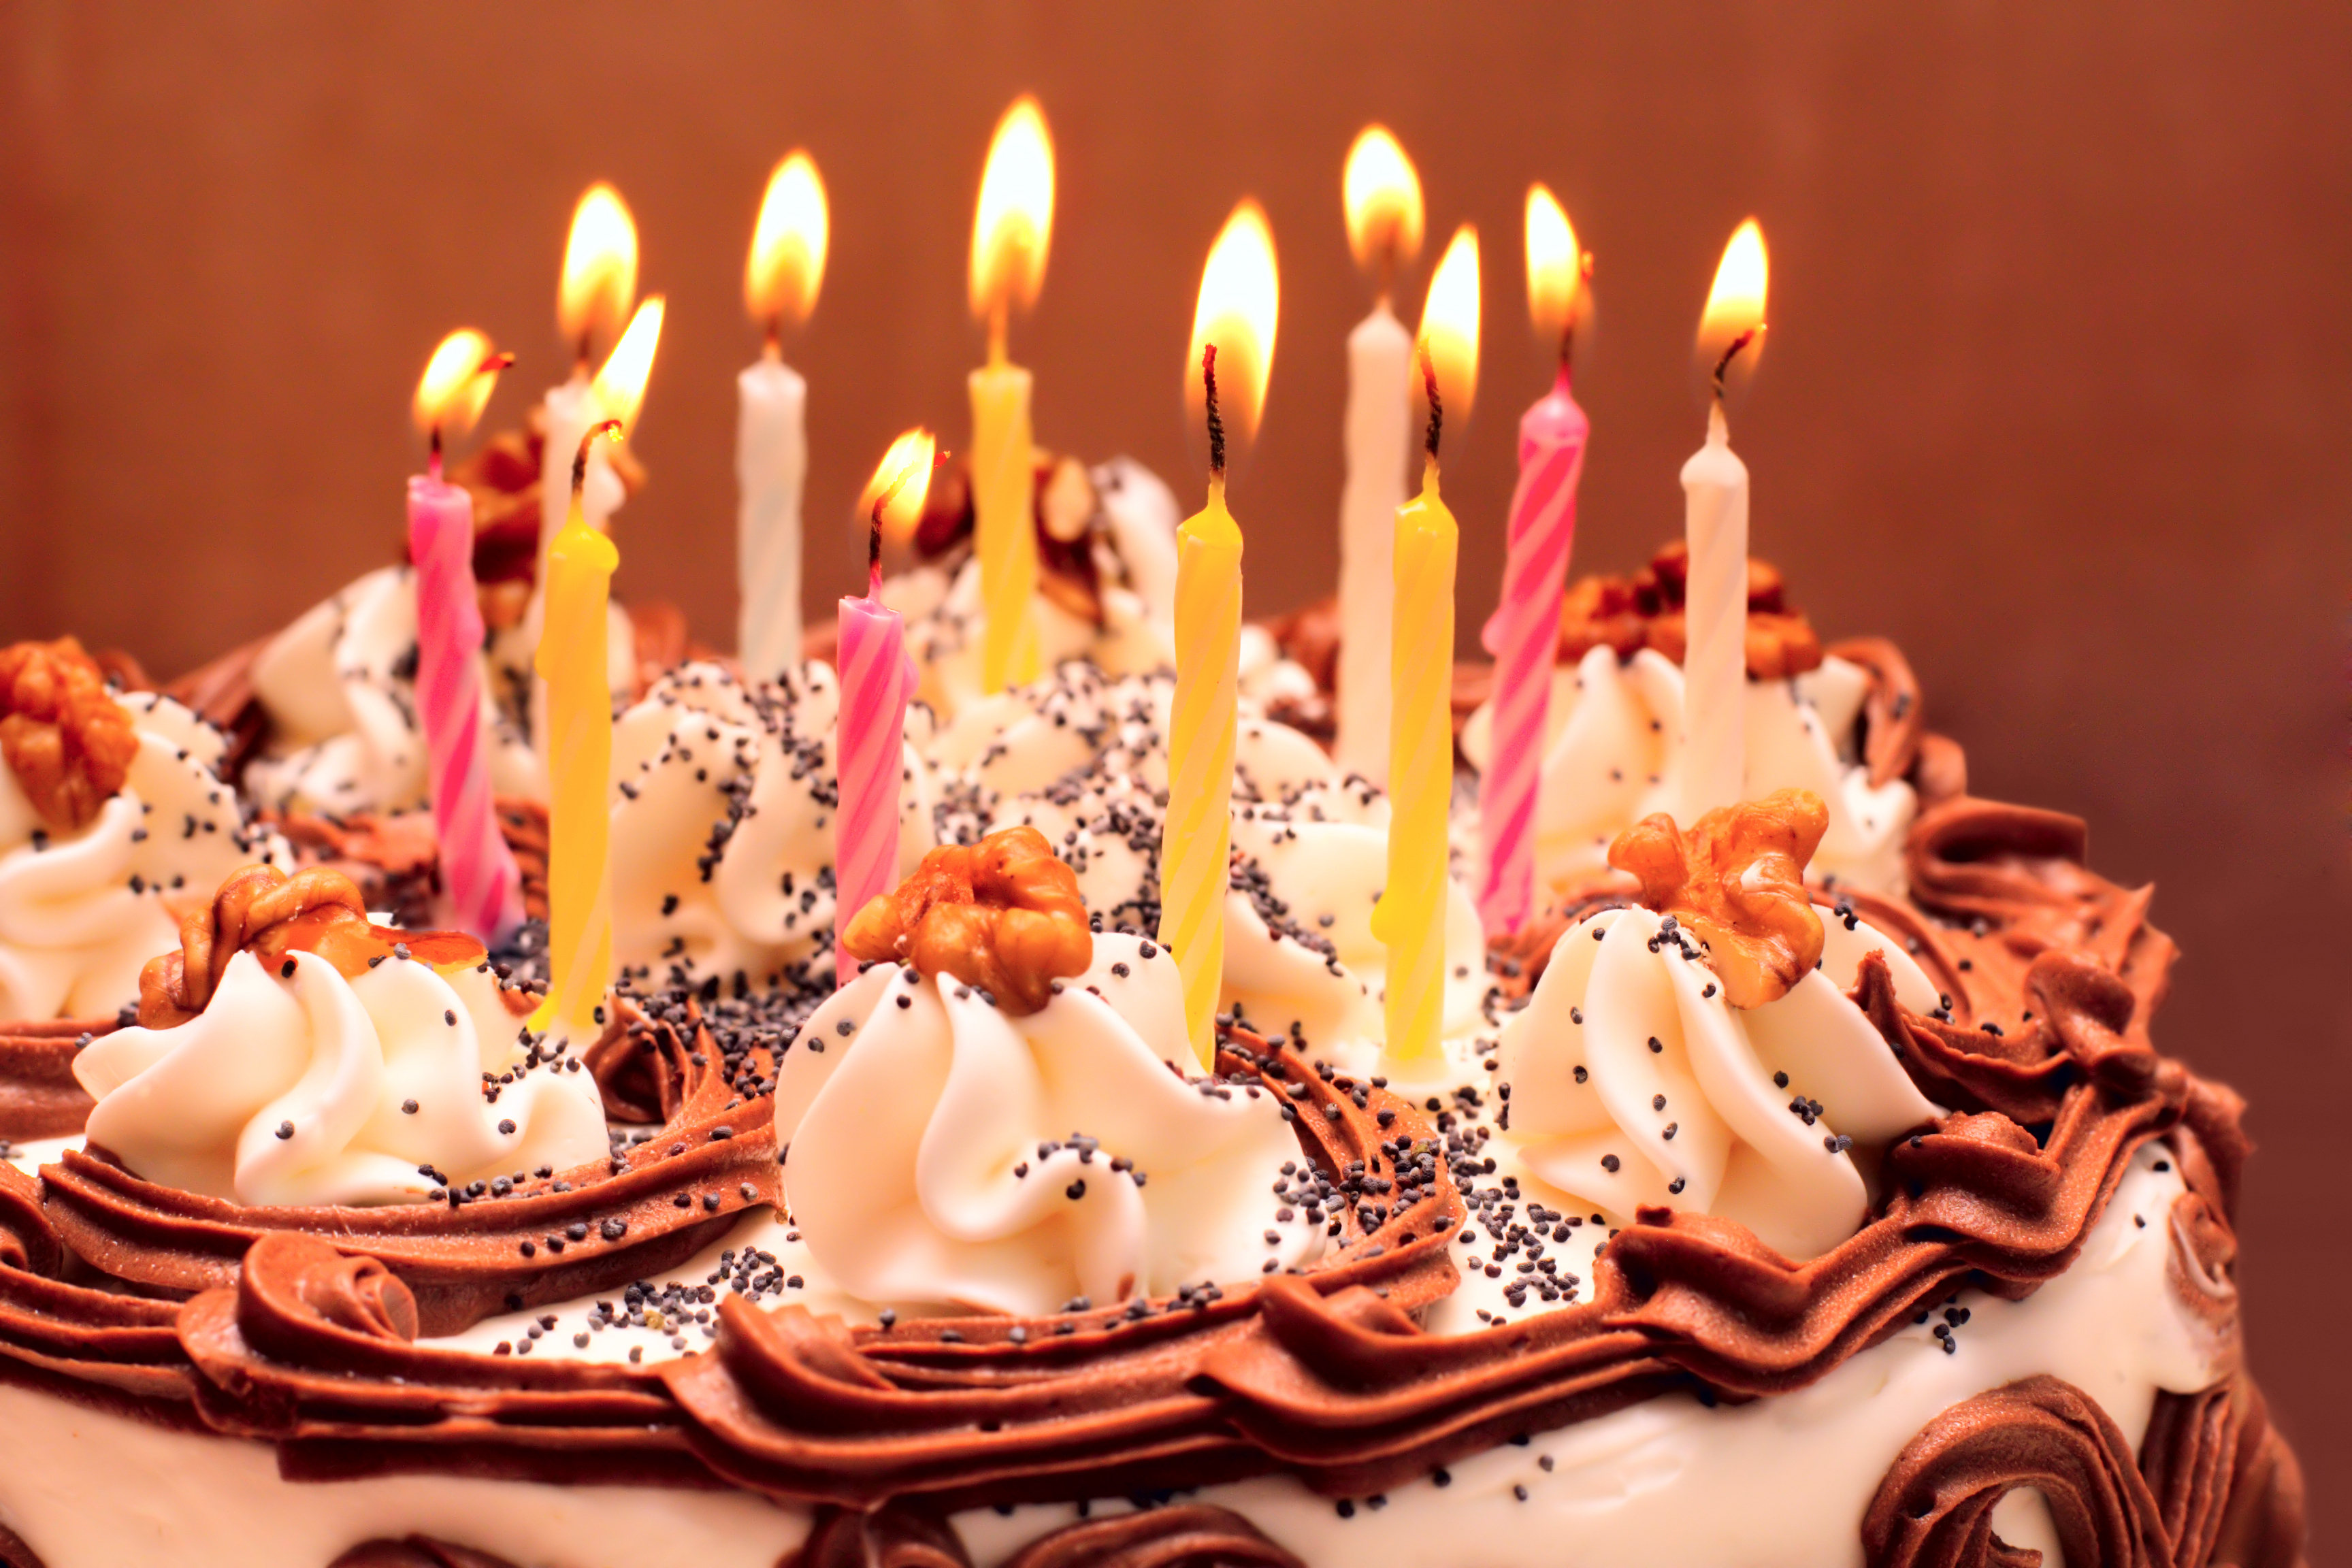 How The Practice Of Putting Candles On Cakes For Birthdays